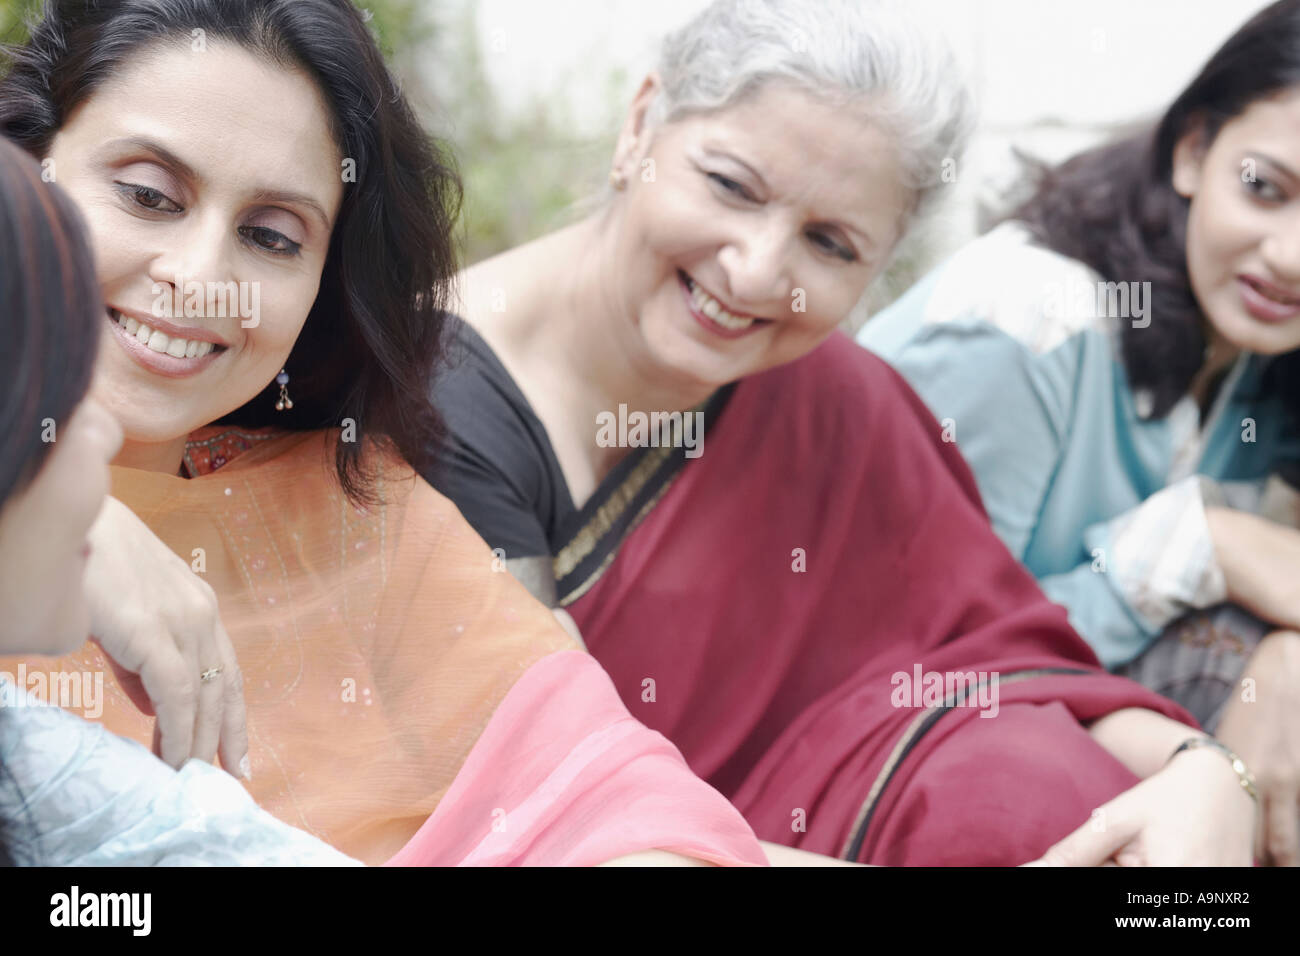 Four women sitting together smiling - Stock Image